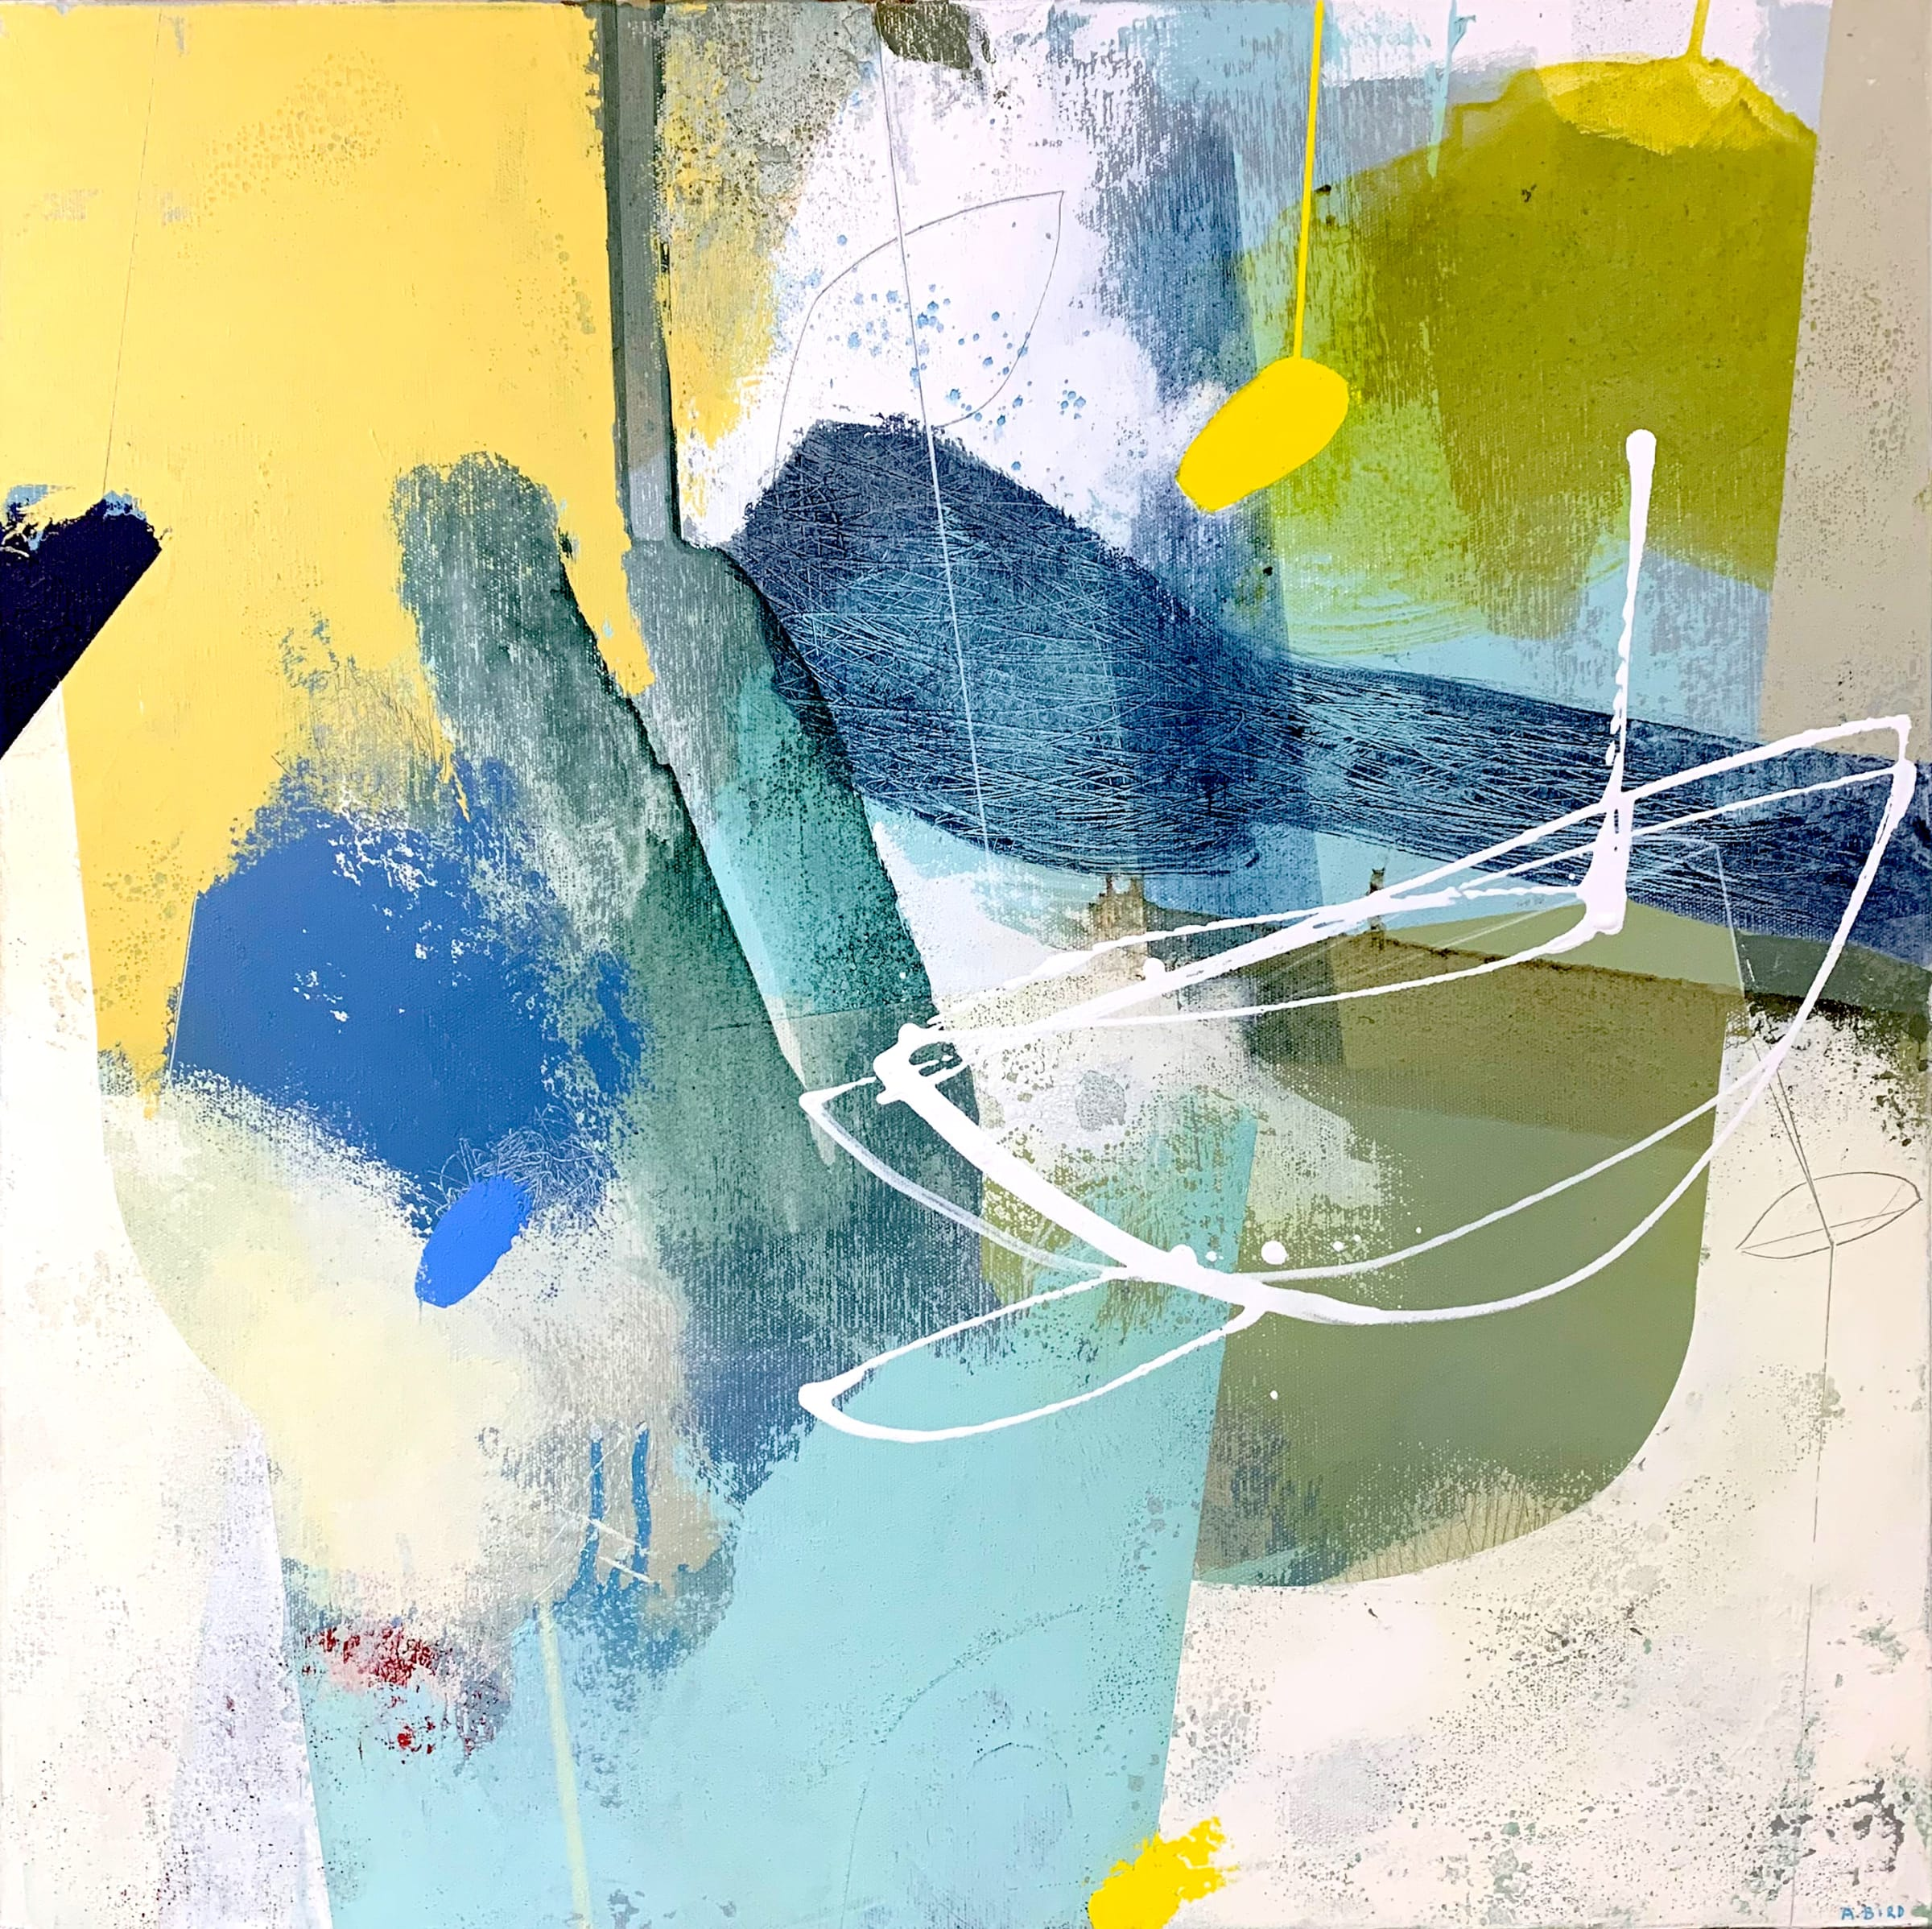 """<span class=""""link fancybox-details-link""""><a href=""""/store/artworks/7978-andrew-bird-working-cove-2021/"""">View Detail Page</a></span><div class=""""artist""""><strong>Andrew Bird</strong></div> b. 1969 <div class=""""title""""><em>Working Cove</em>, 2021</div> <div class=""""medium"""">acrylic on canvas</div> <div class=""""dimensions"""">61 x 61 cm </div><div class=""""price"""">£1,850.00</div><div class=""""copyright_line"""">Own Art: £185 x 10 Months, 0% APR </div>"""